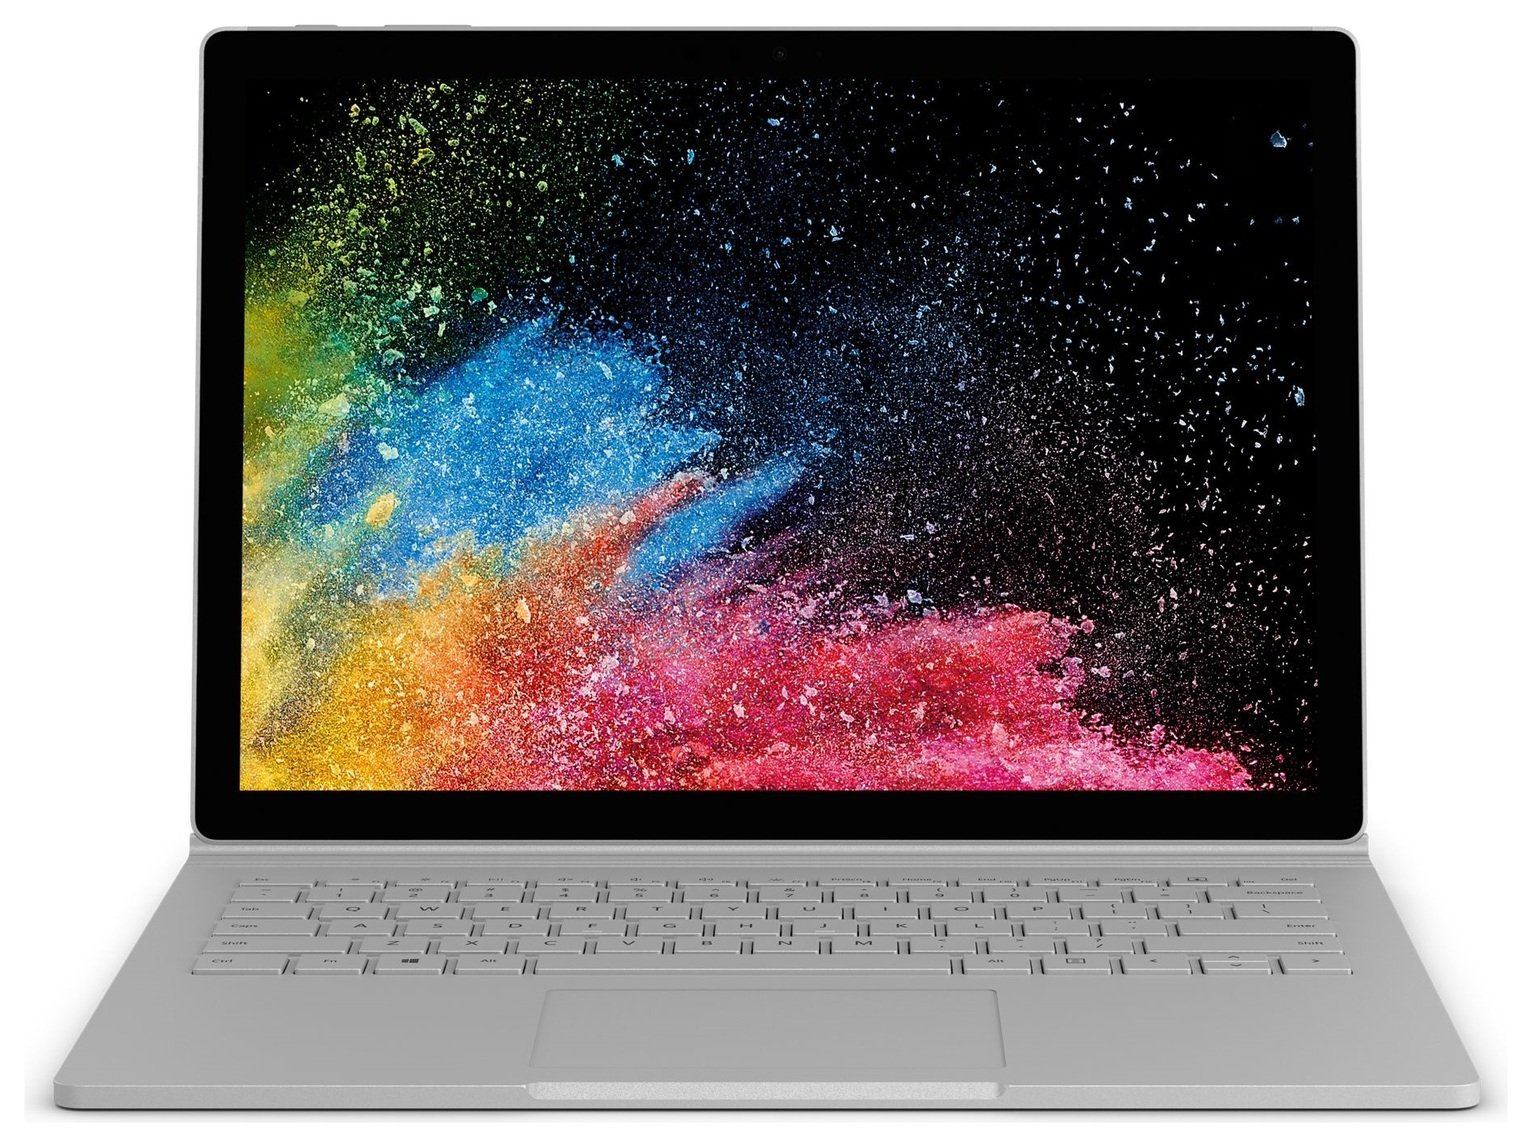 Microsoft surface Microsoft Surface Book 2 13 Inch i5 8GB 128GB 2-in-1 Laptop